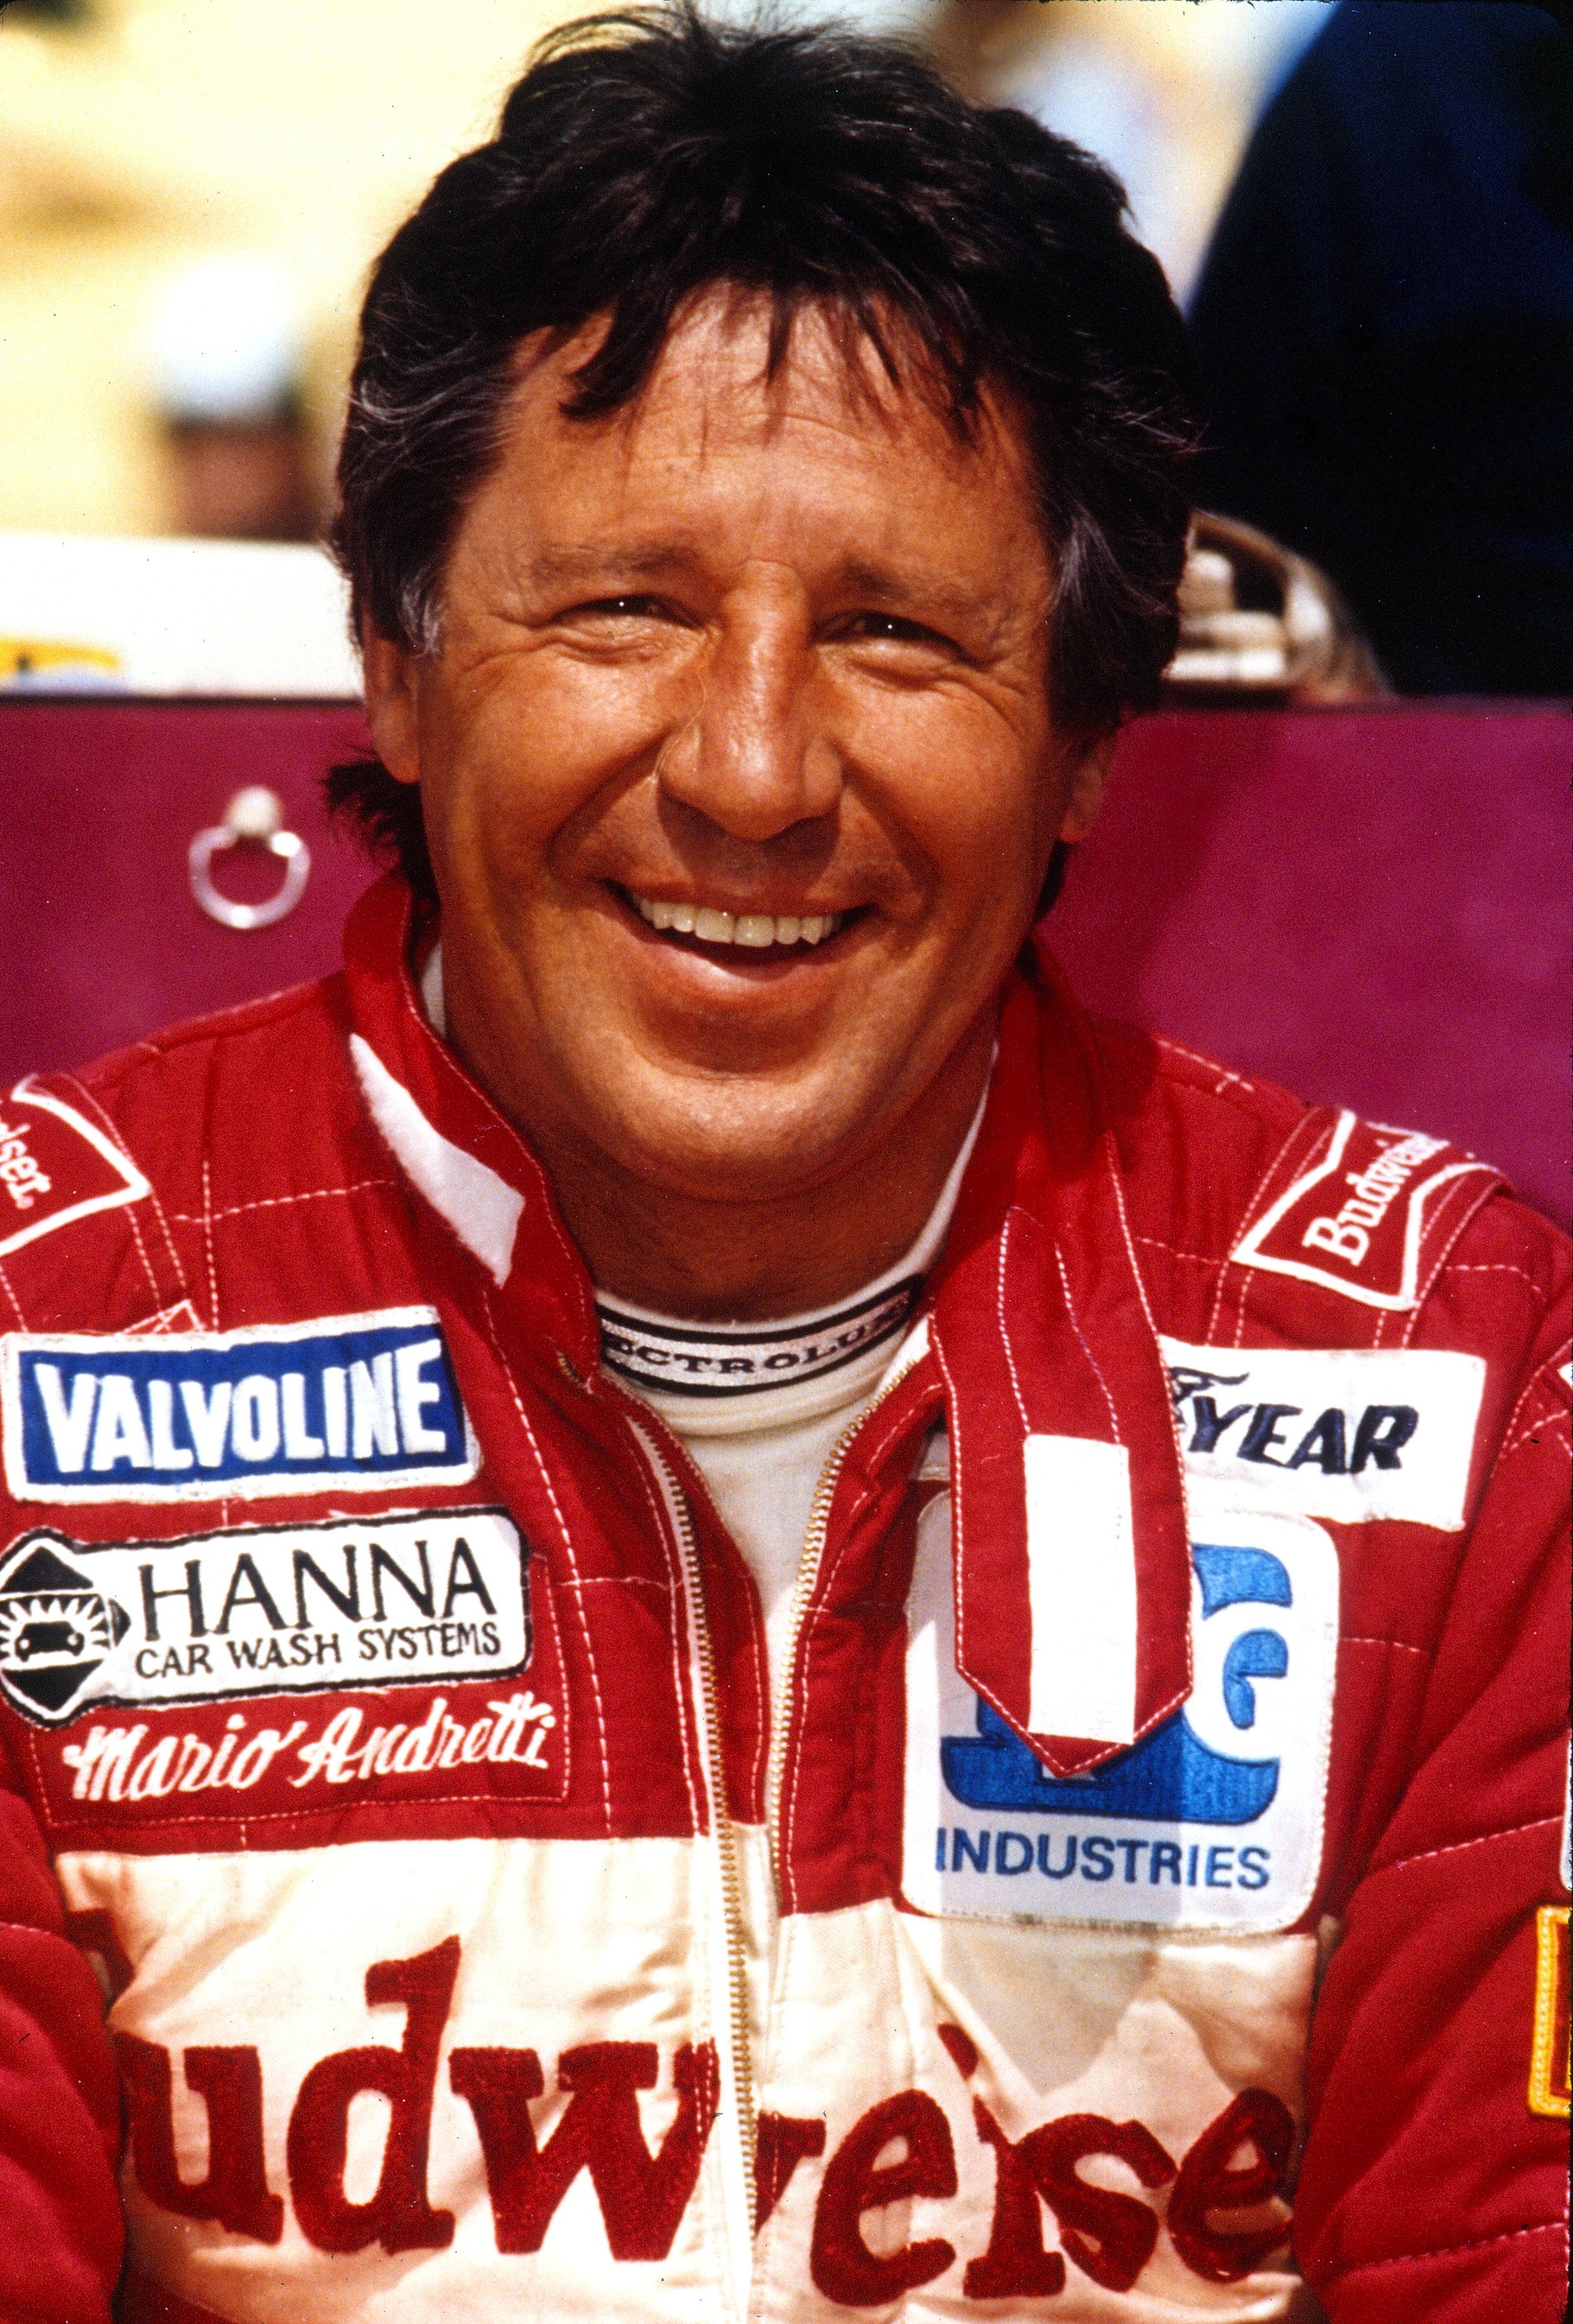 IndyCar Driver Mario Andretti